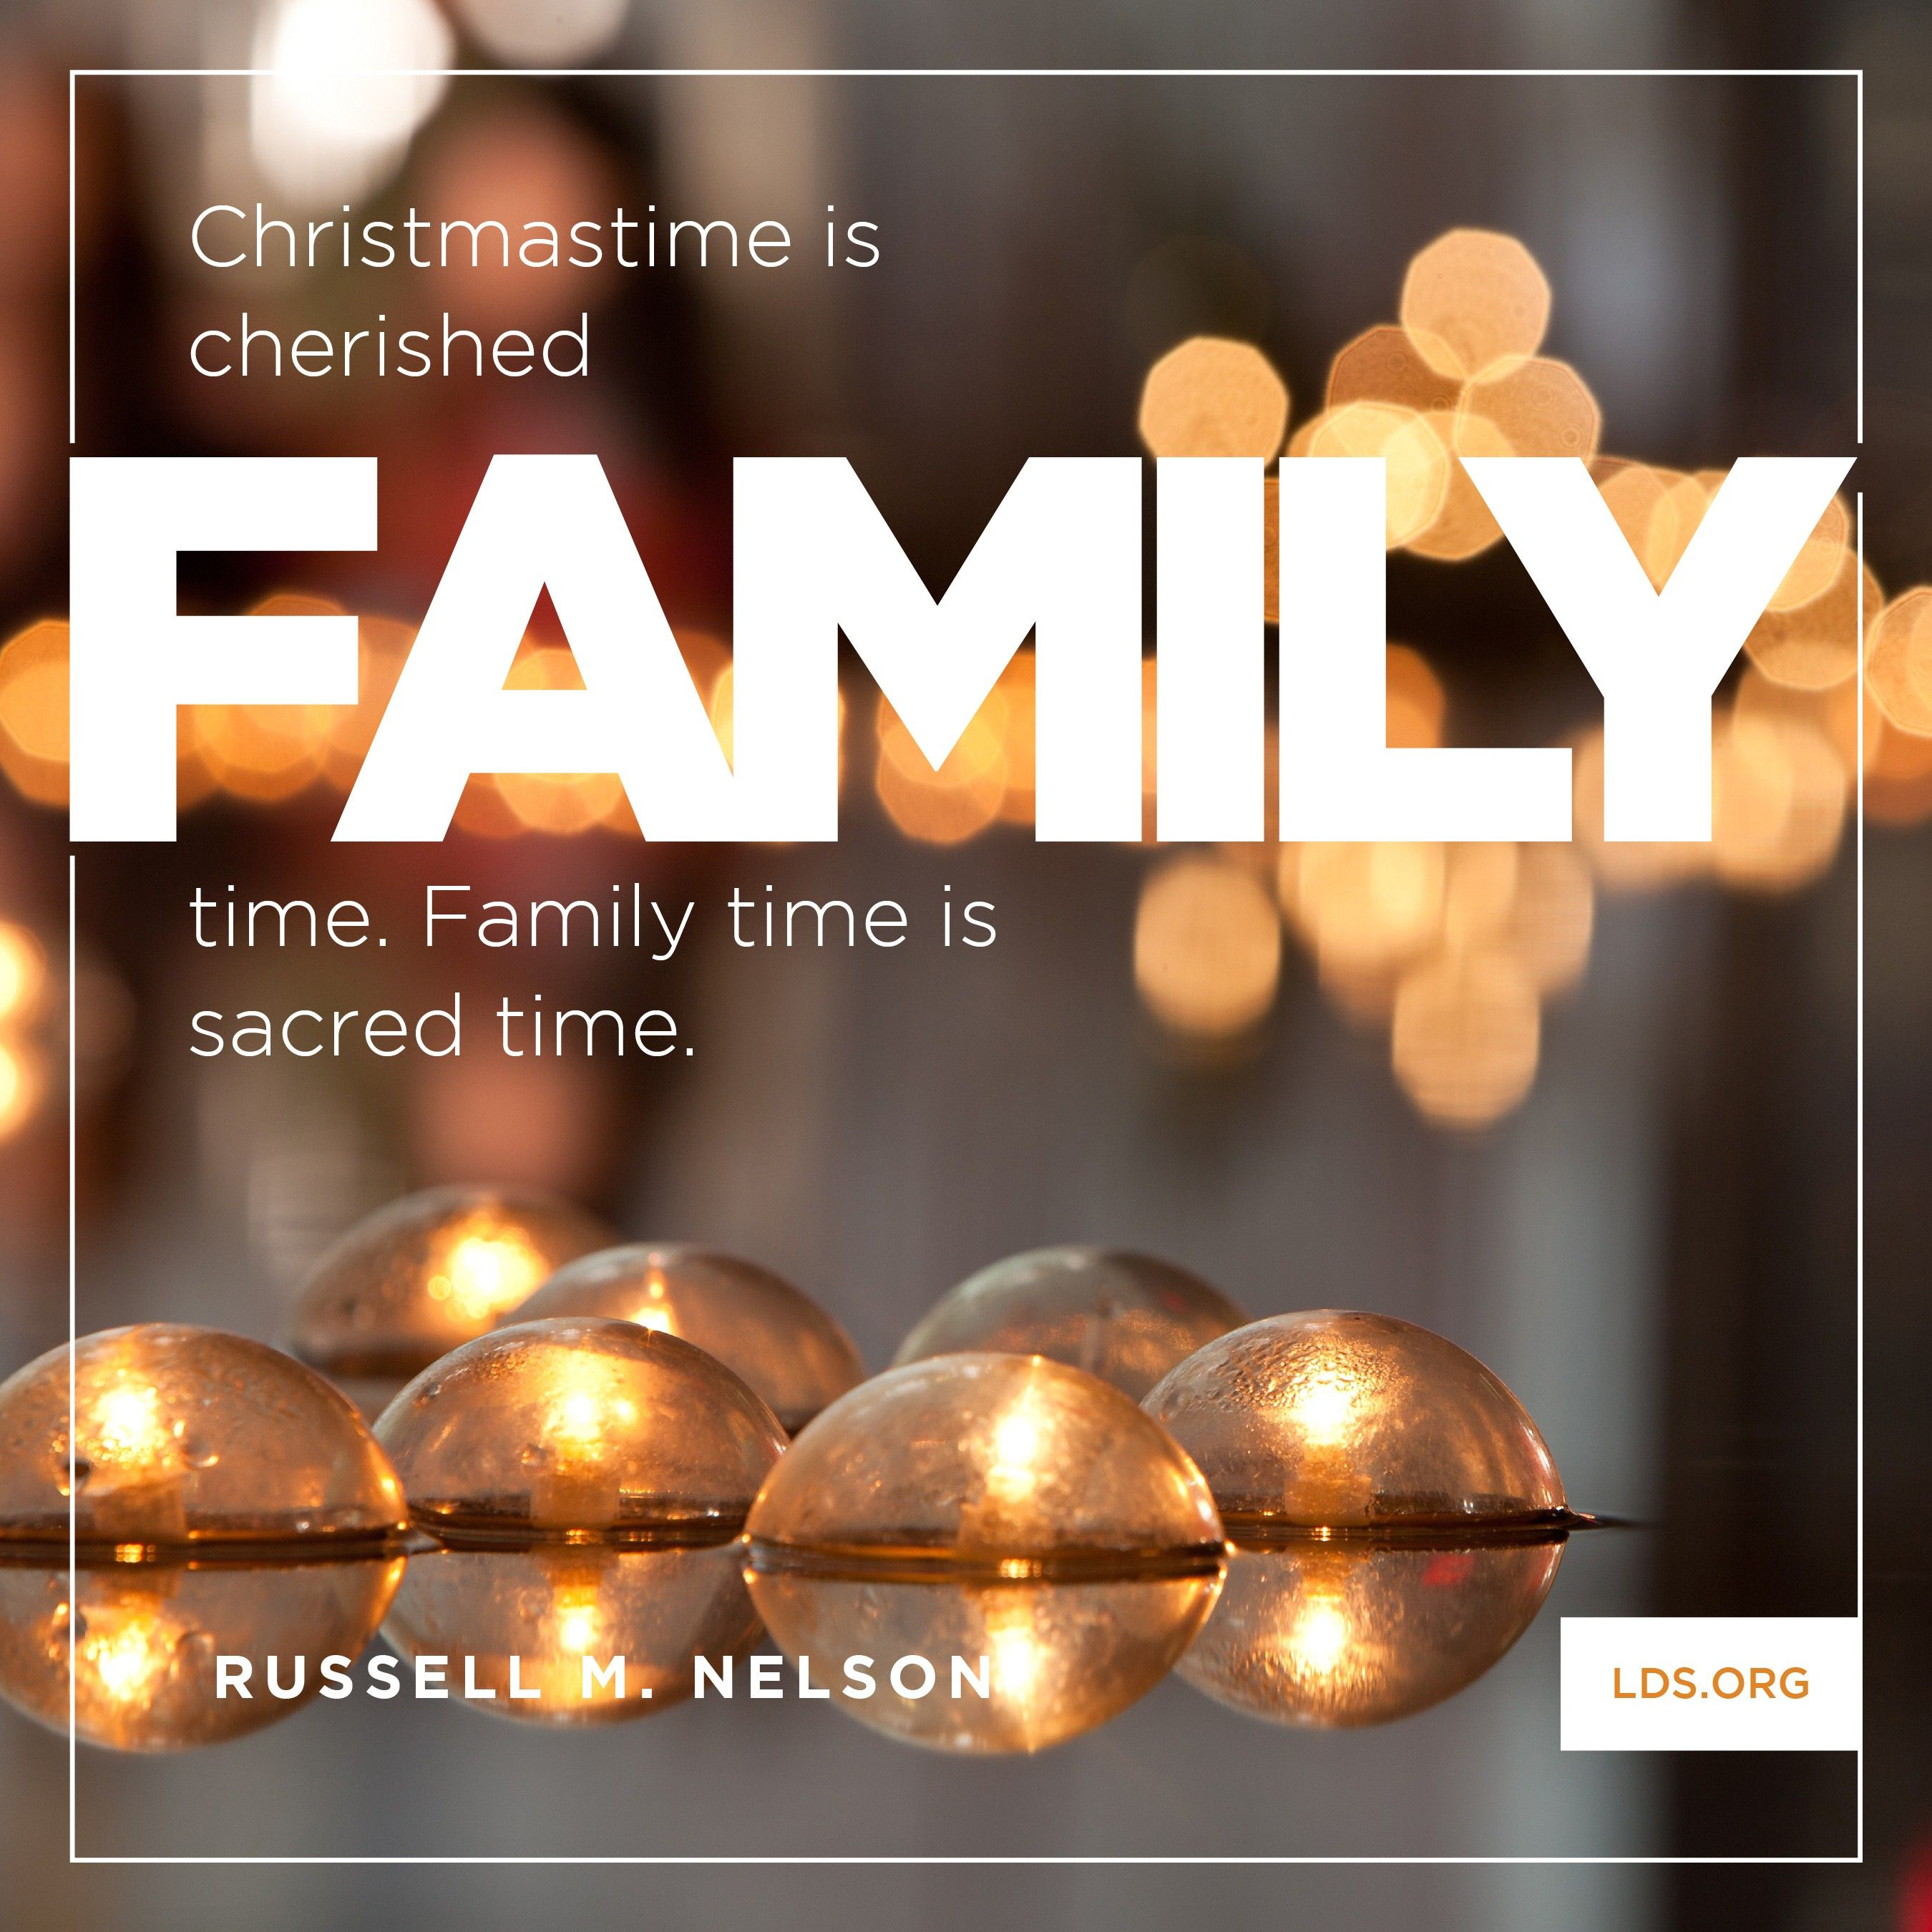 """Christmastime is cherished family time. Family time is sacred time.""—President Russell M. Nelson, ""Jesus the Christ—Our Prince of Peace"""